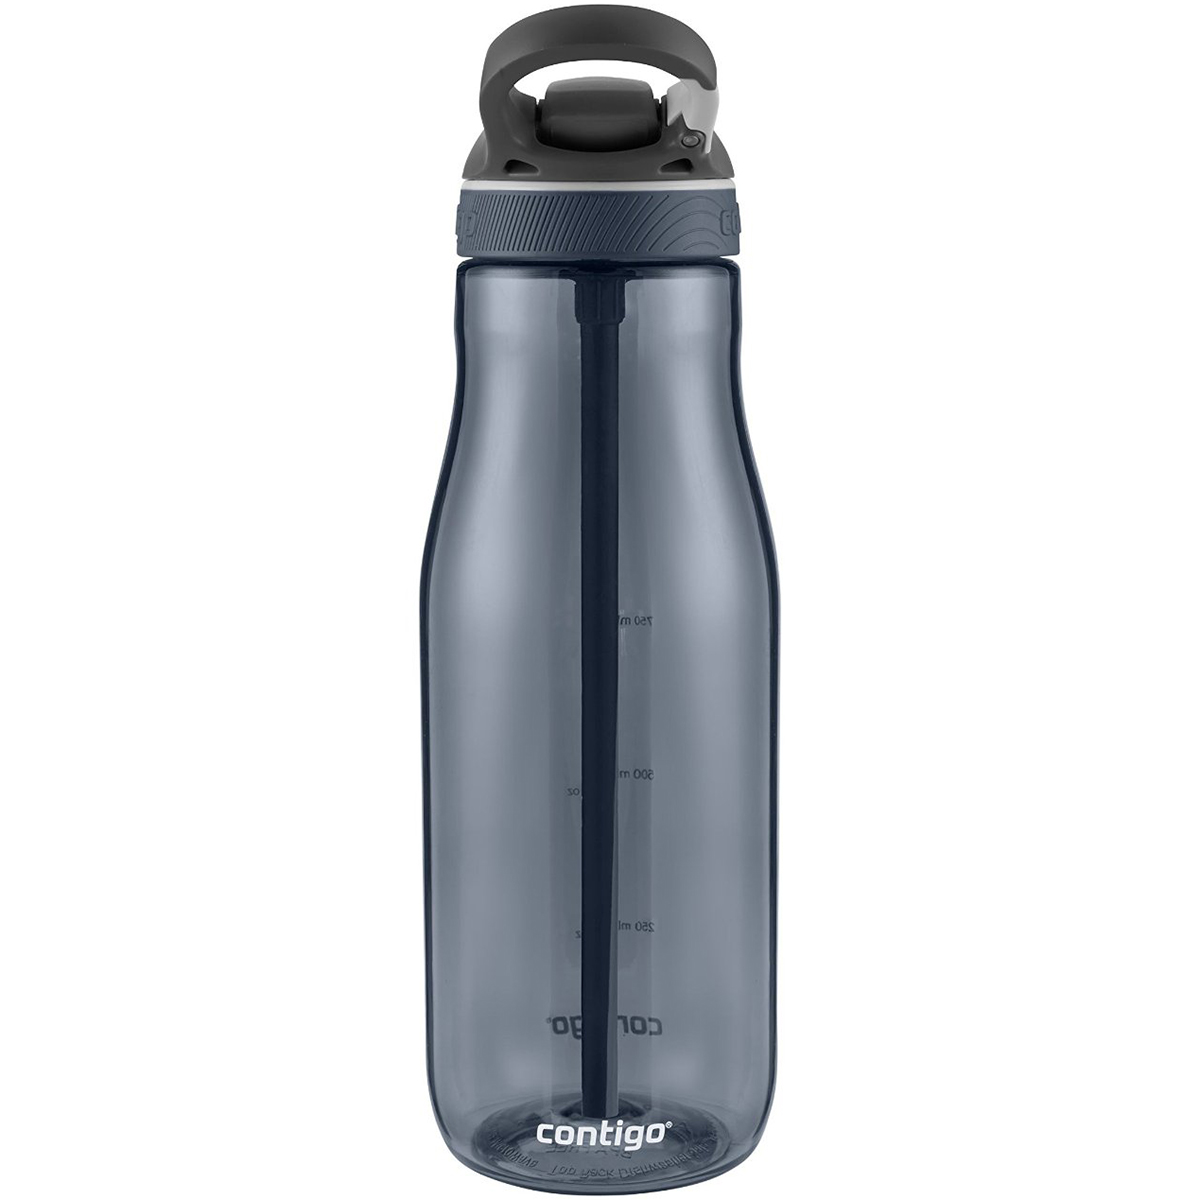 Contigo-40-oz-Ashland-Autospout-Water-Bottle thumbnail 27